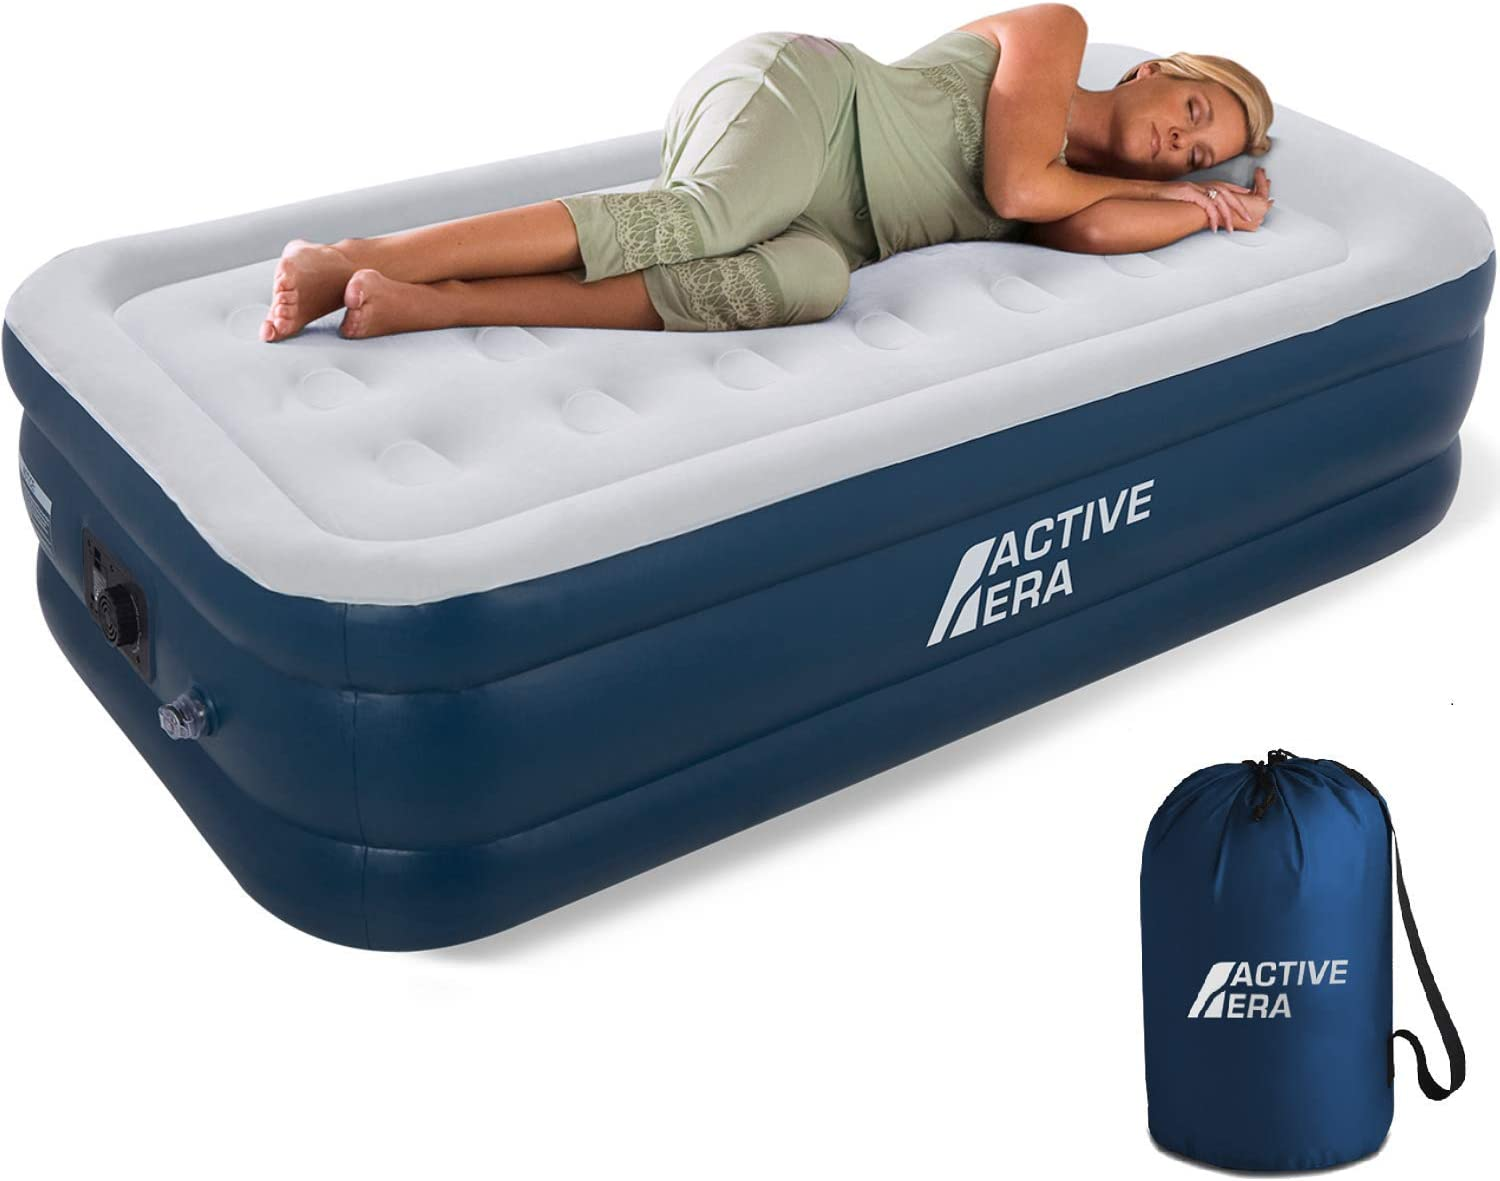 Active Era Premium Air Mattress Twin Size Single Elevated Inflatable Air Mattress Built In Electric Pump Raised Pillow Structured Air Coil Technology Height 18 Amazon Ca Sports Outdoors